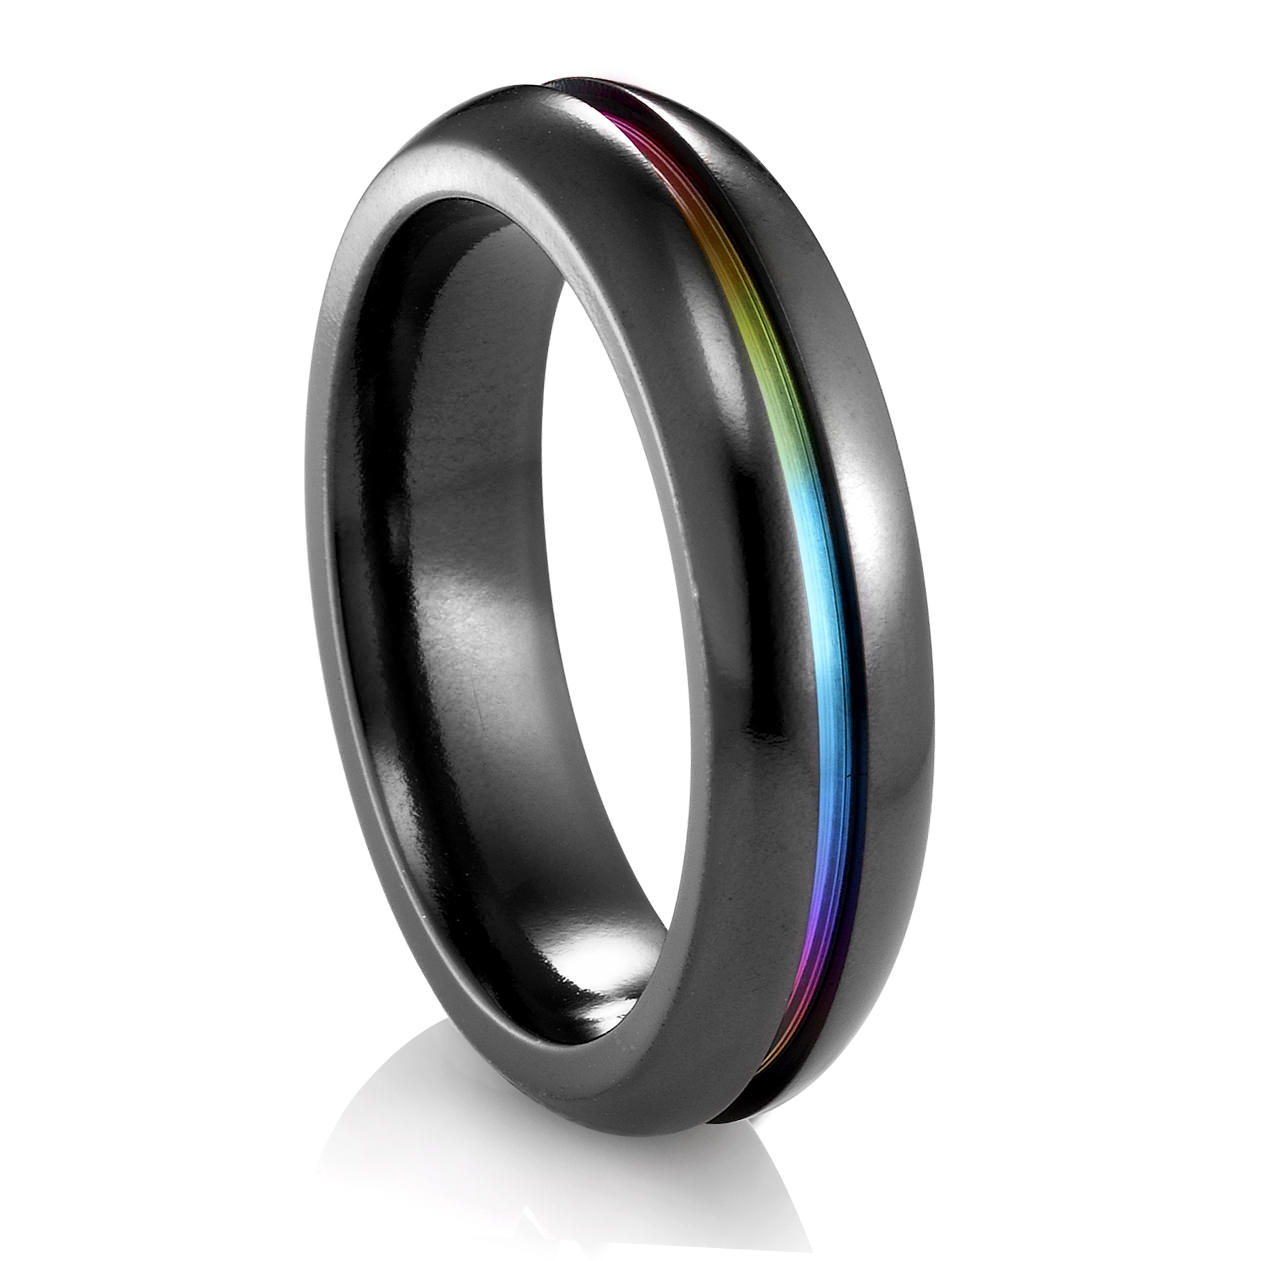 hematite description and product man band rings natural rainbow wedding color finger rbvajfisakeadesiaaegzz for plated